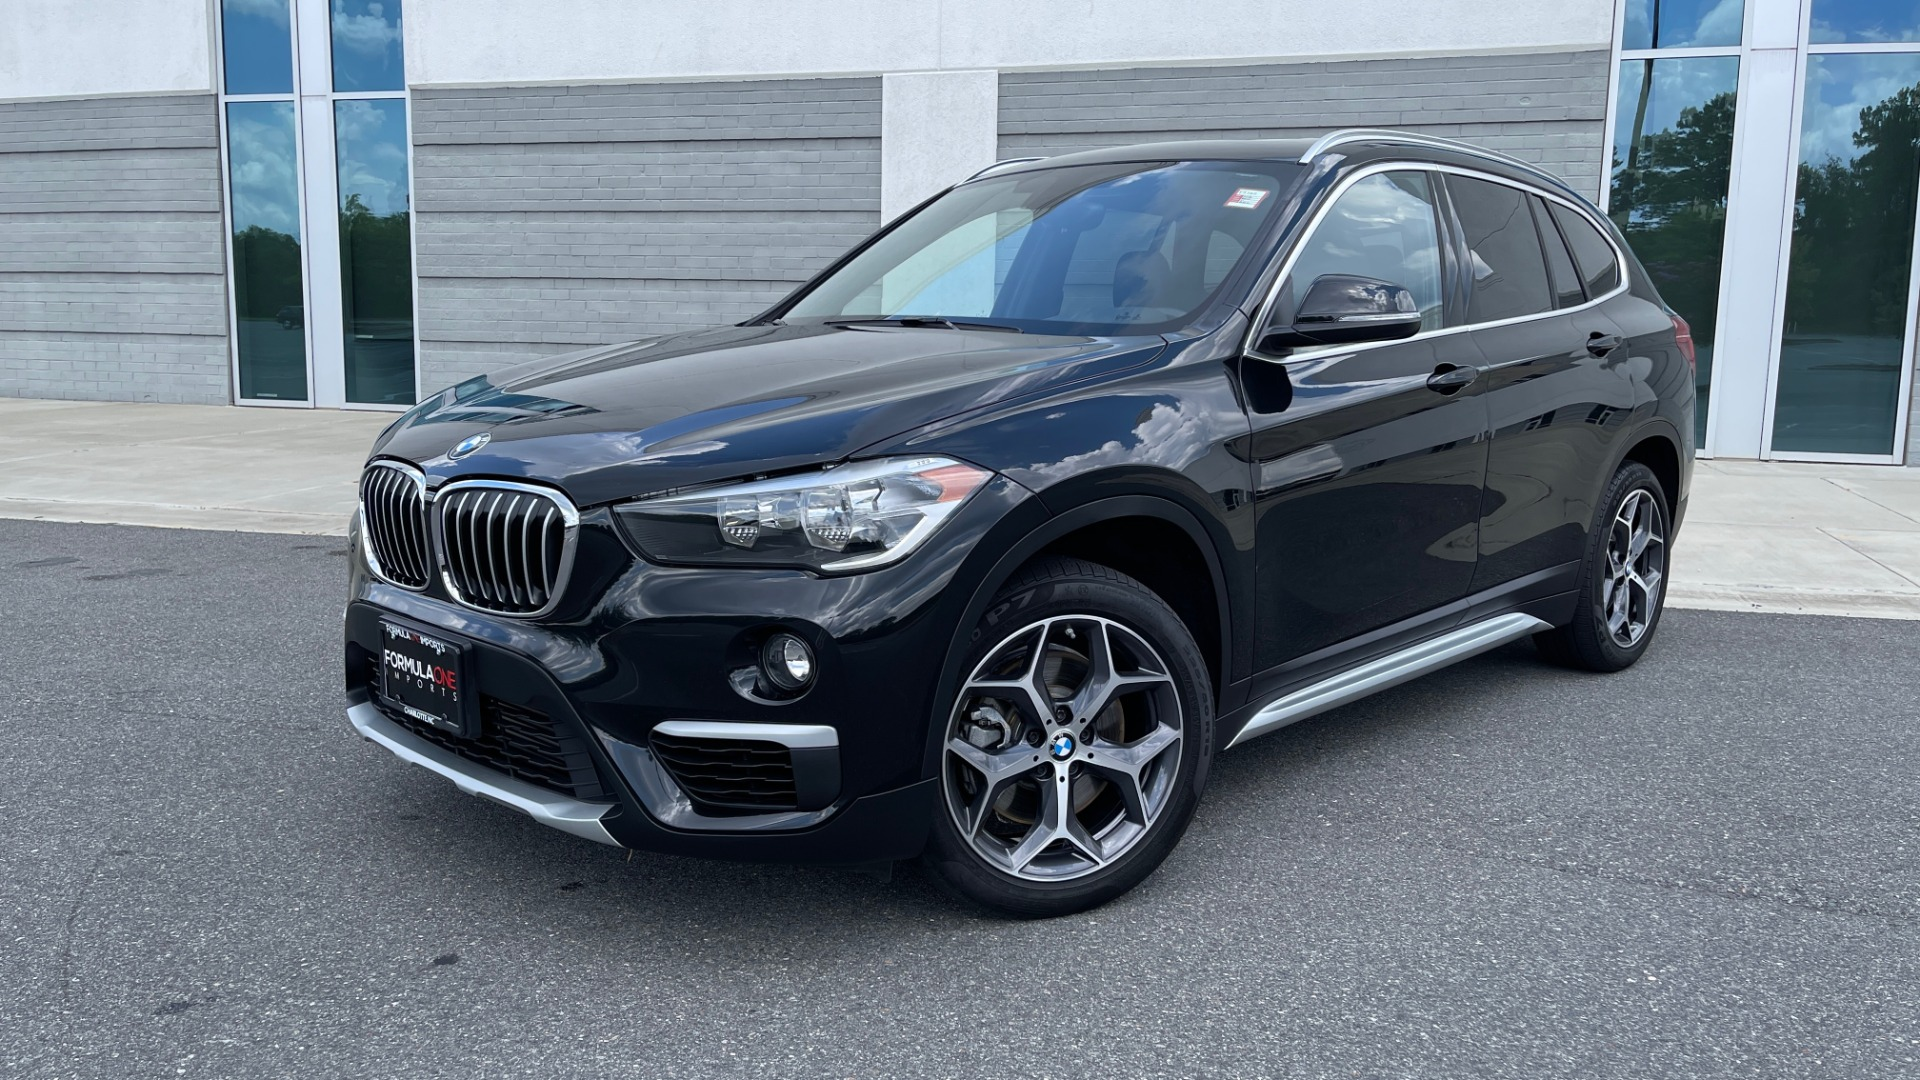 Used 2018 BMW X1 XDRIVE28I / NAV / CONV PKG / HTD STS / PANO-ROOF / REARVIEW for sale $29,995 at Formula Imports in Charlotte NC 28227 1